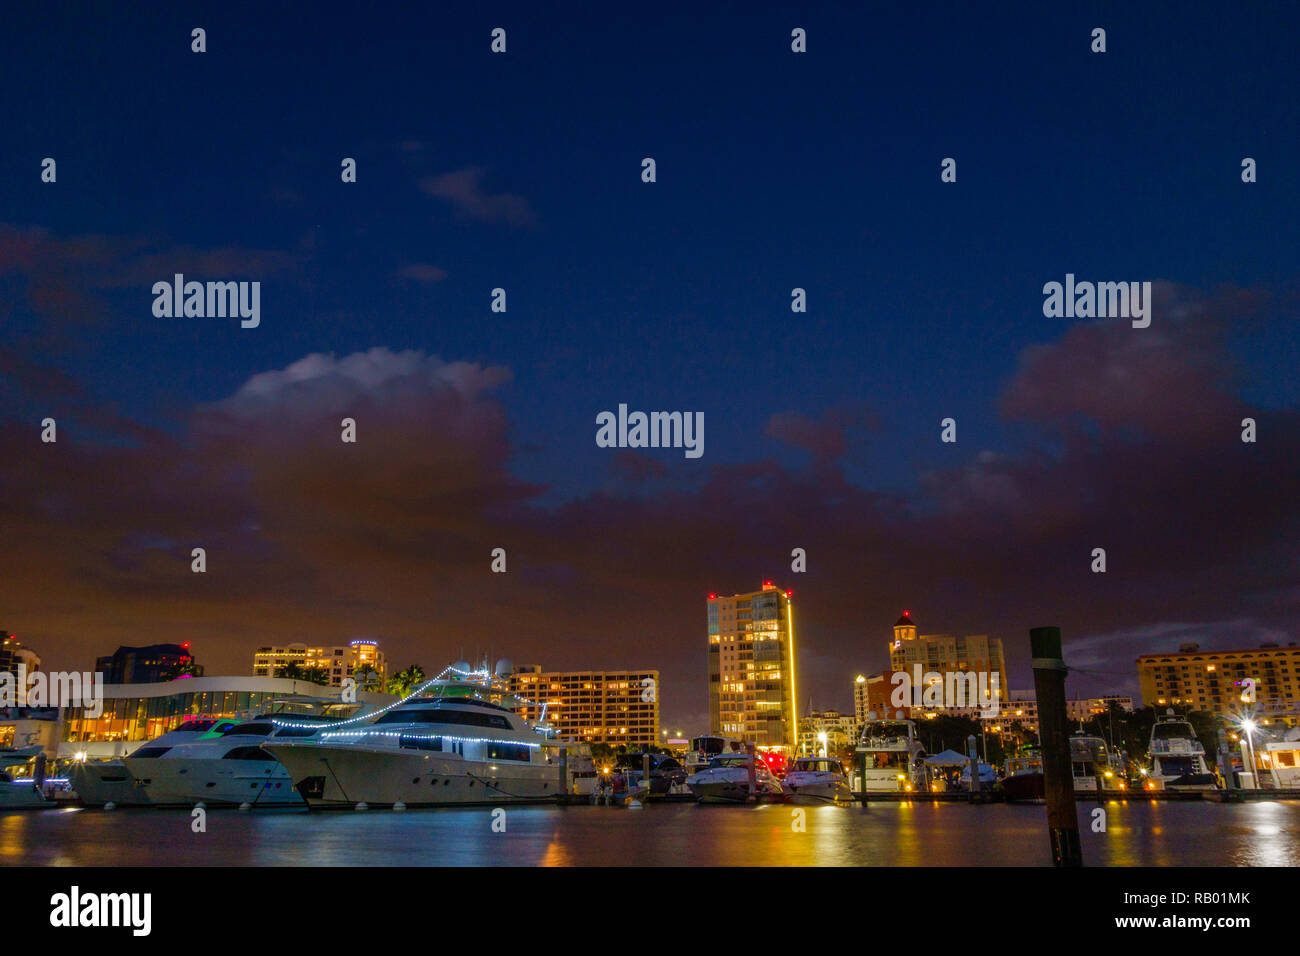 Illuminated cityscape with boats at blue hour - Stock Image